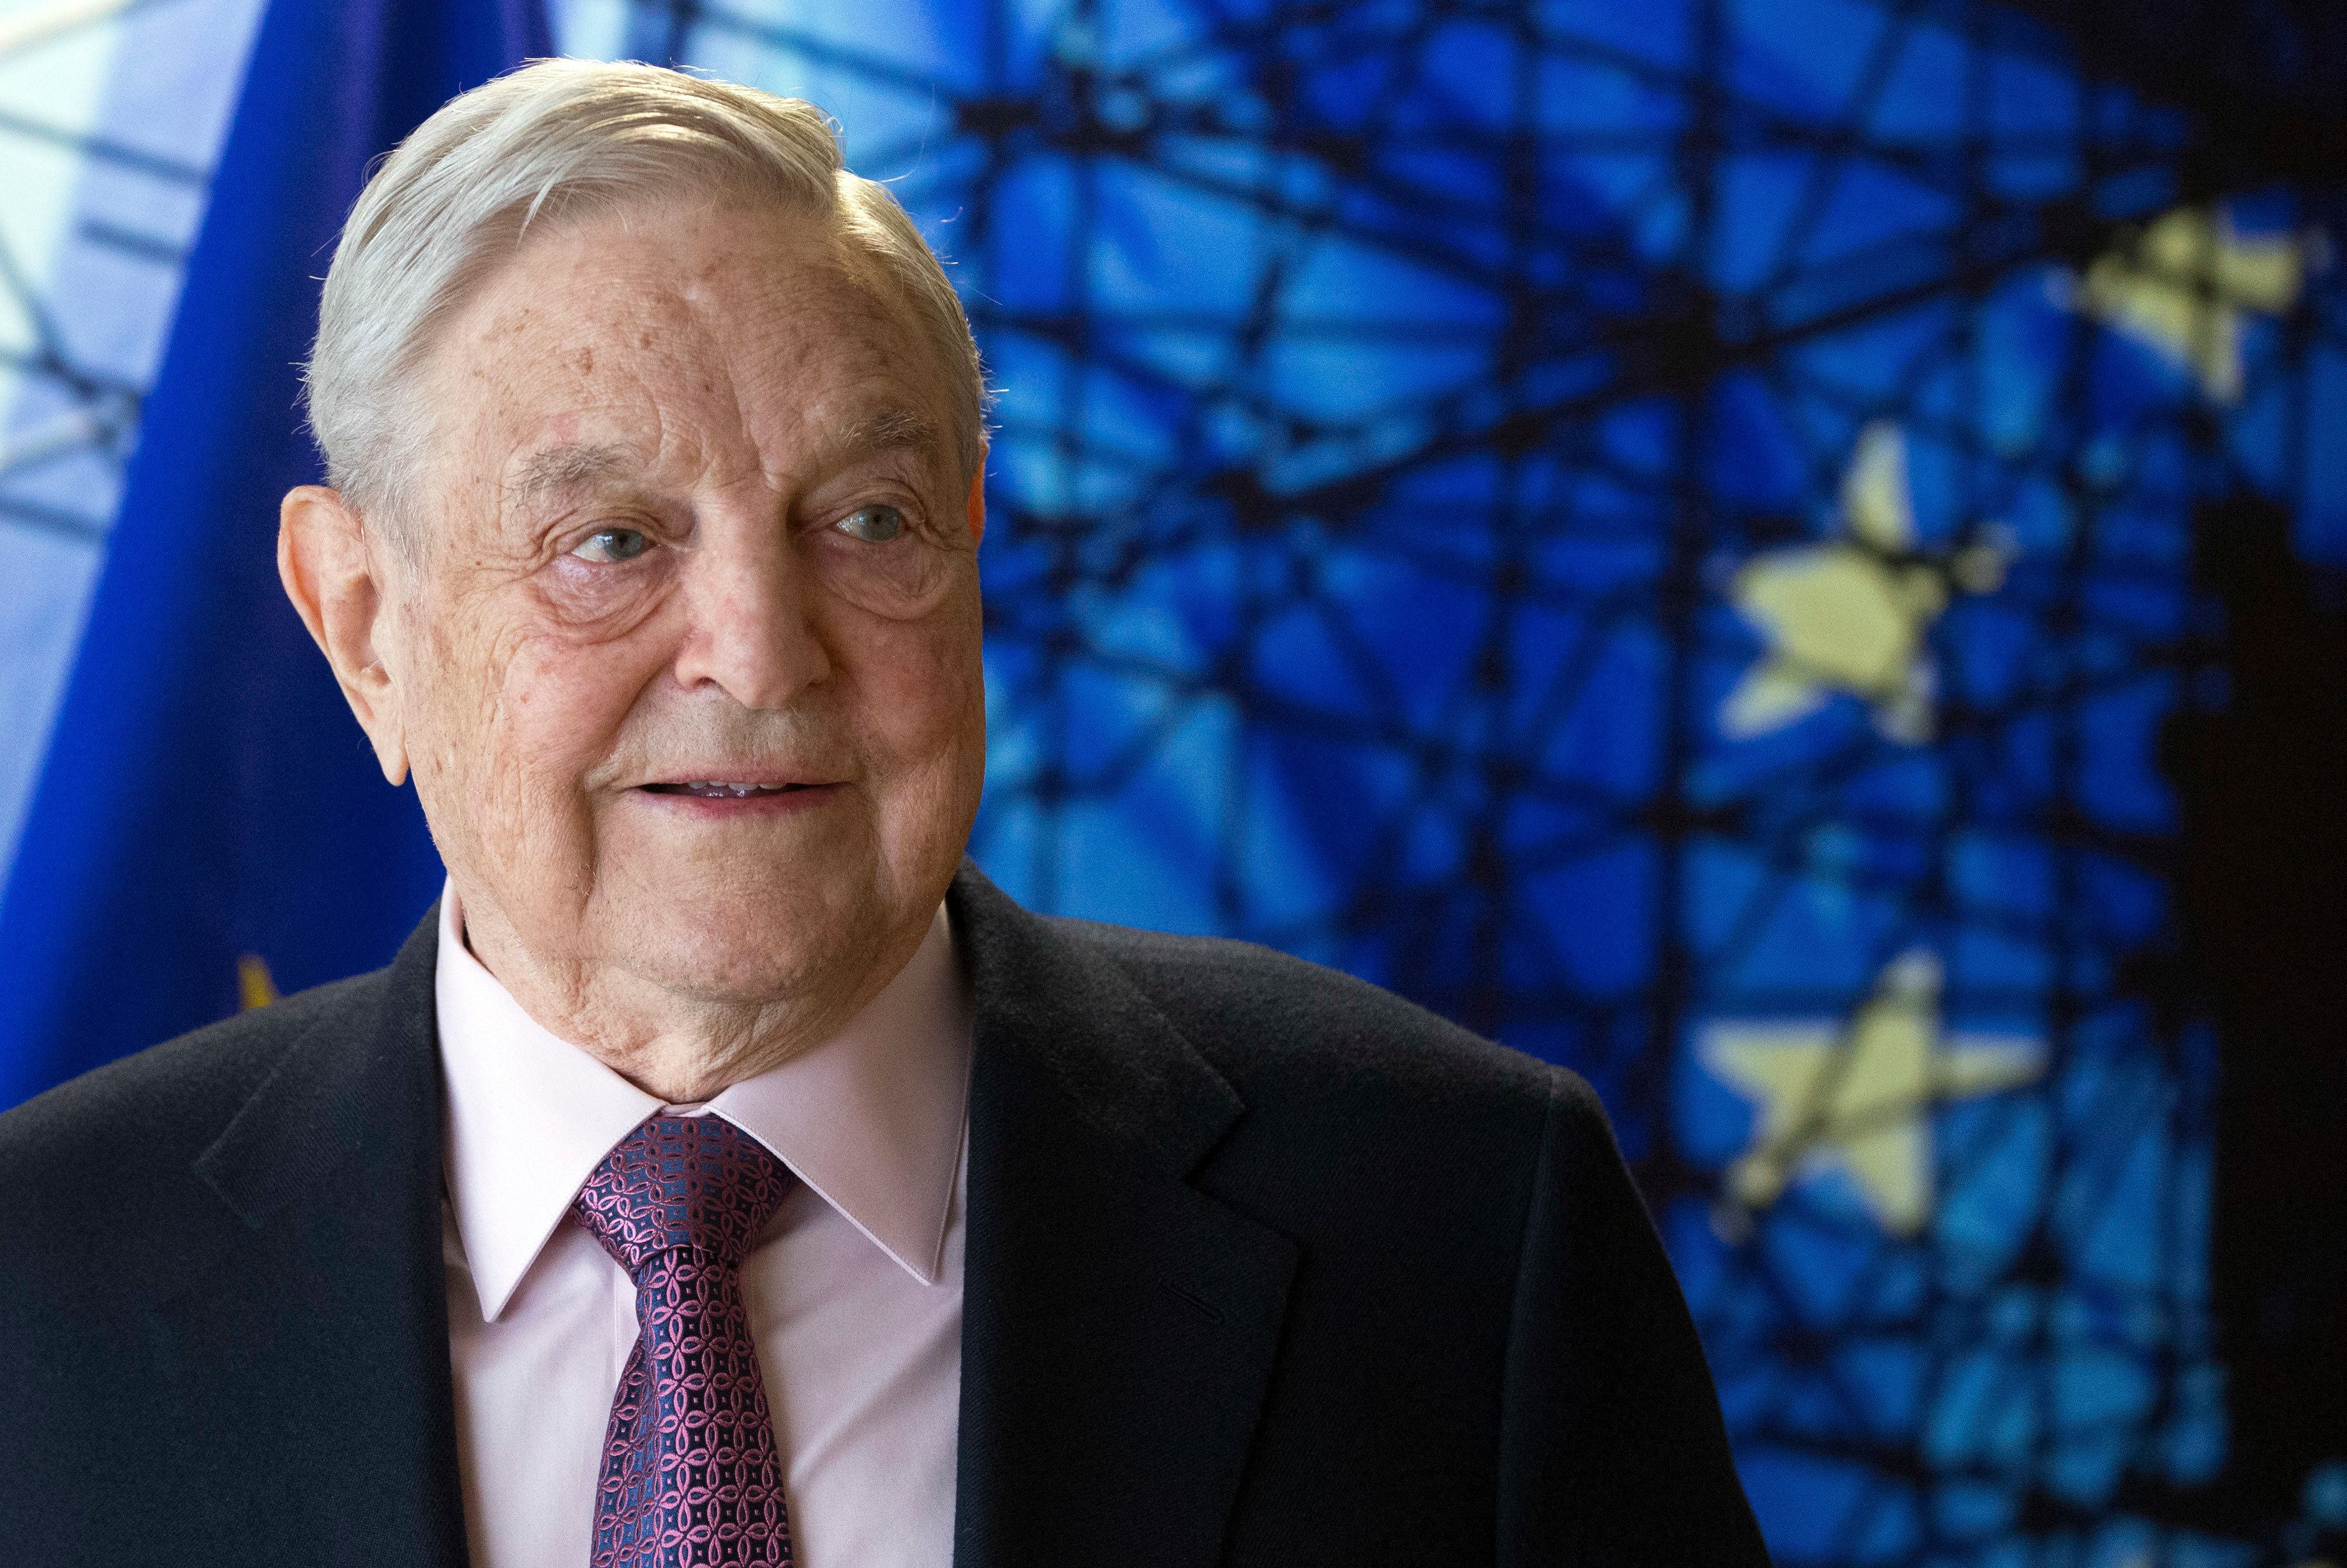 In this Thursday, April 27, 2017 file photo, George Soros, Founder and Chairman of the Open Society Foundation, waits for the